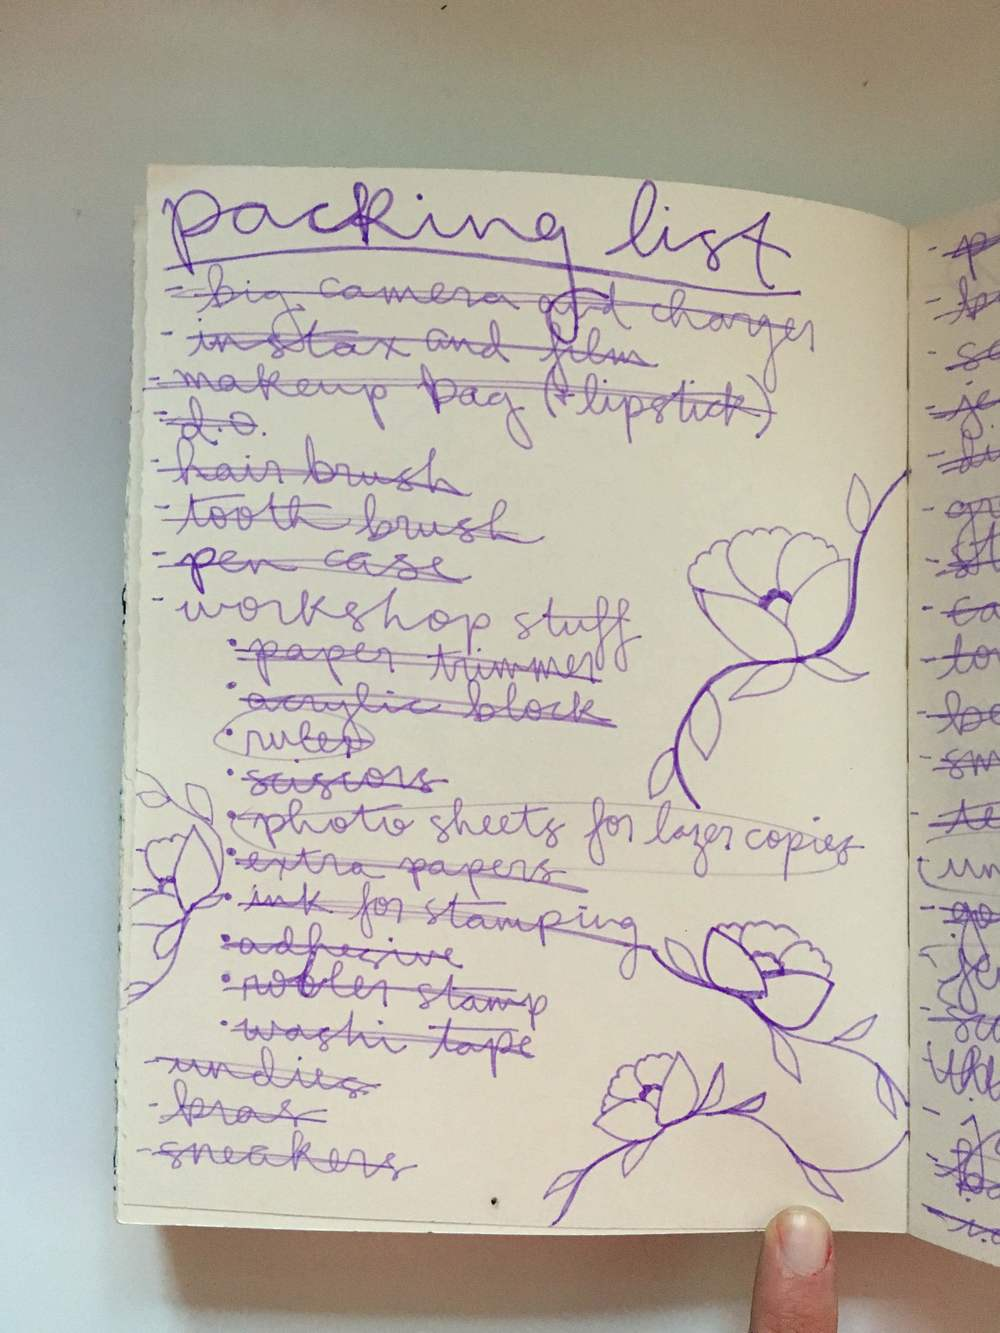 Art Journal Packing List